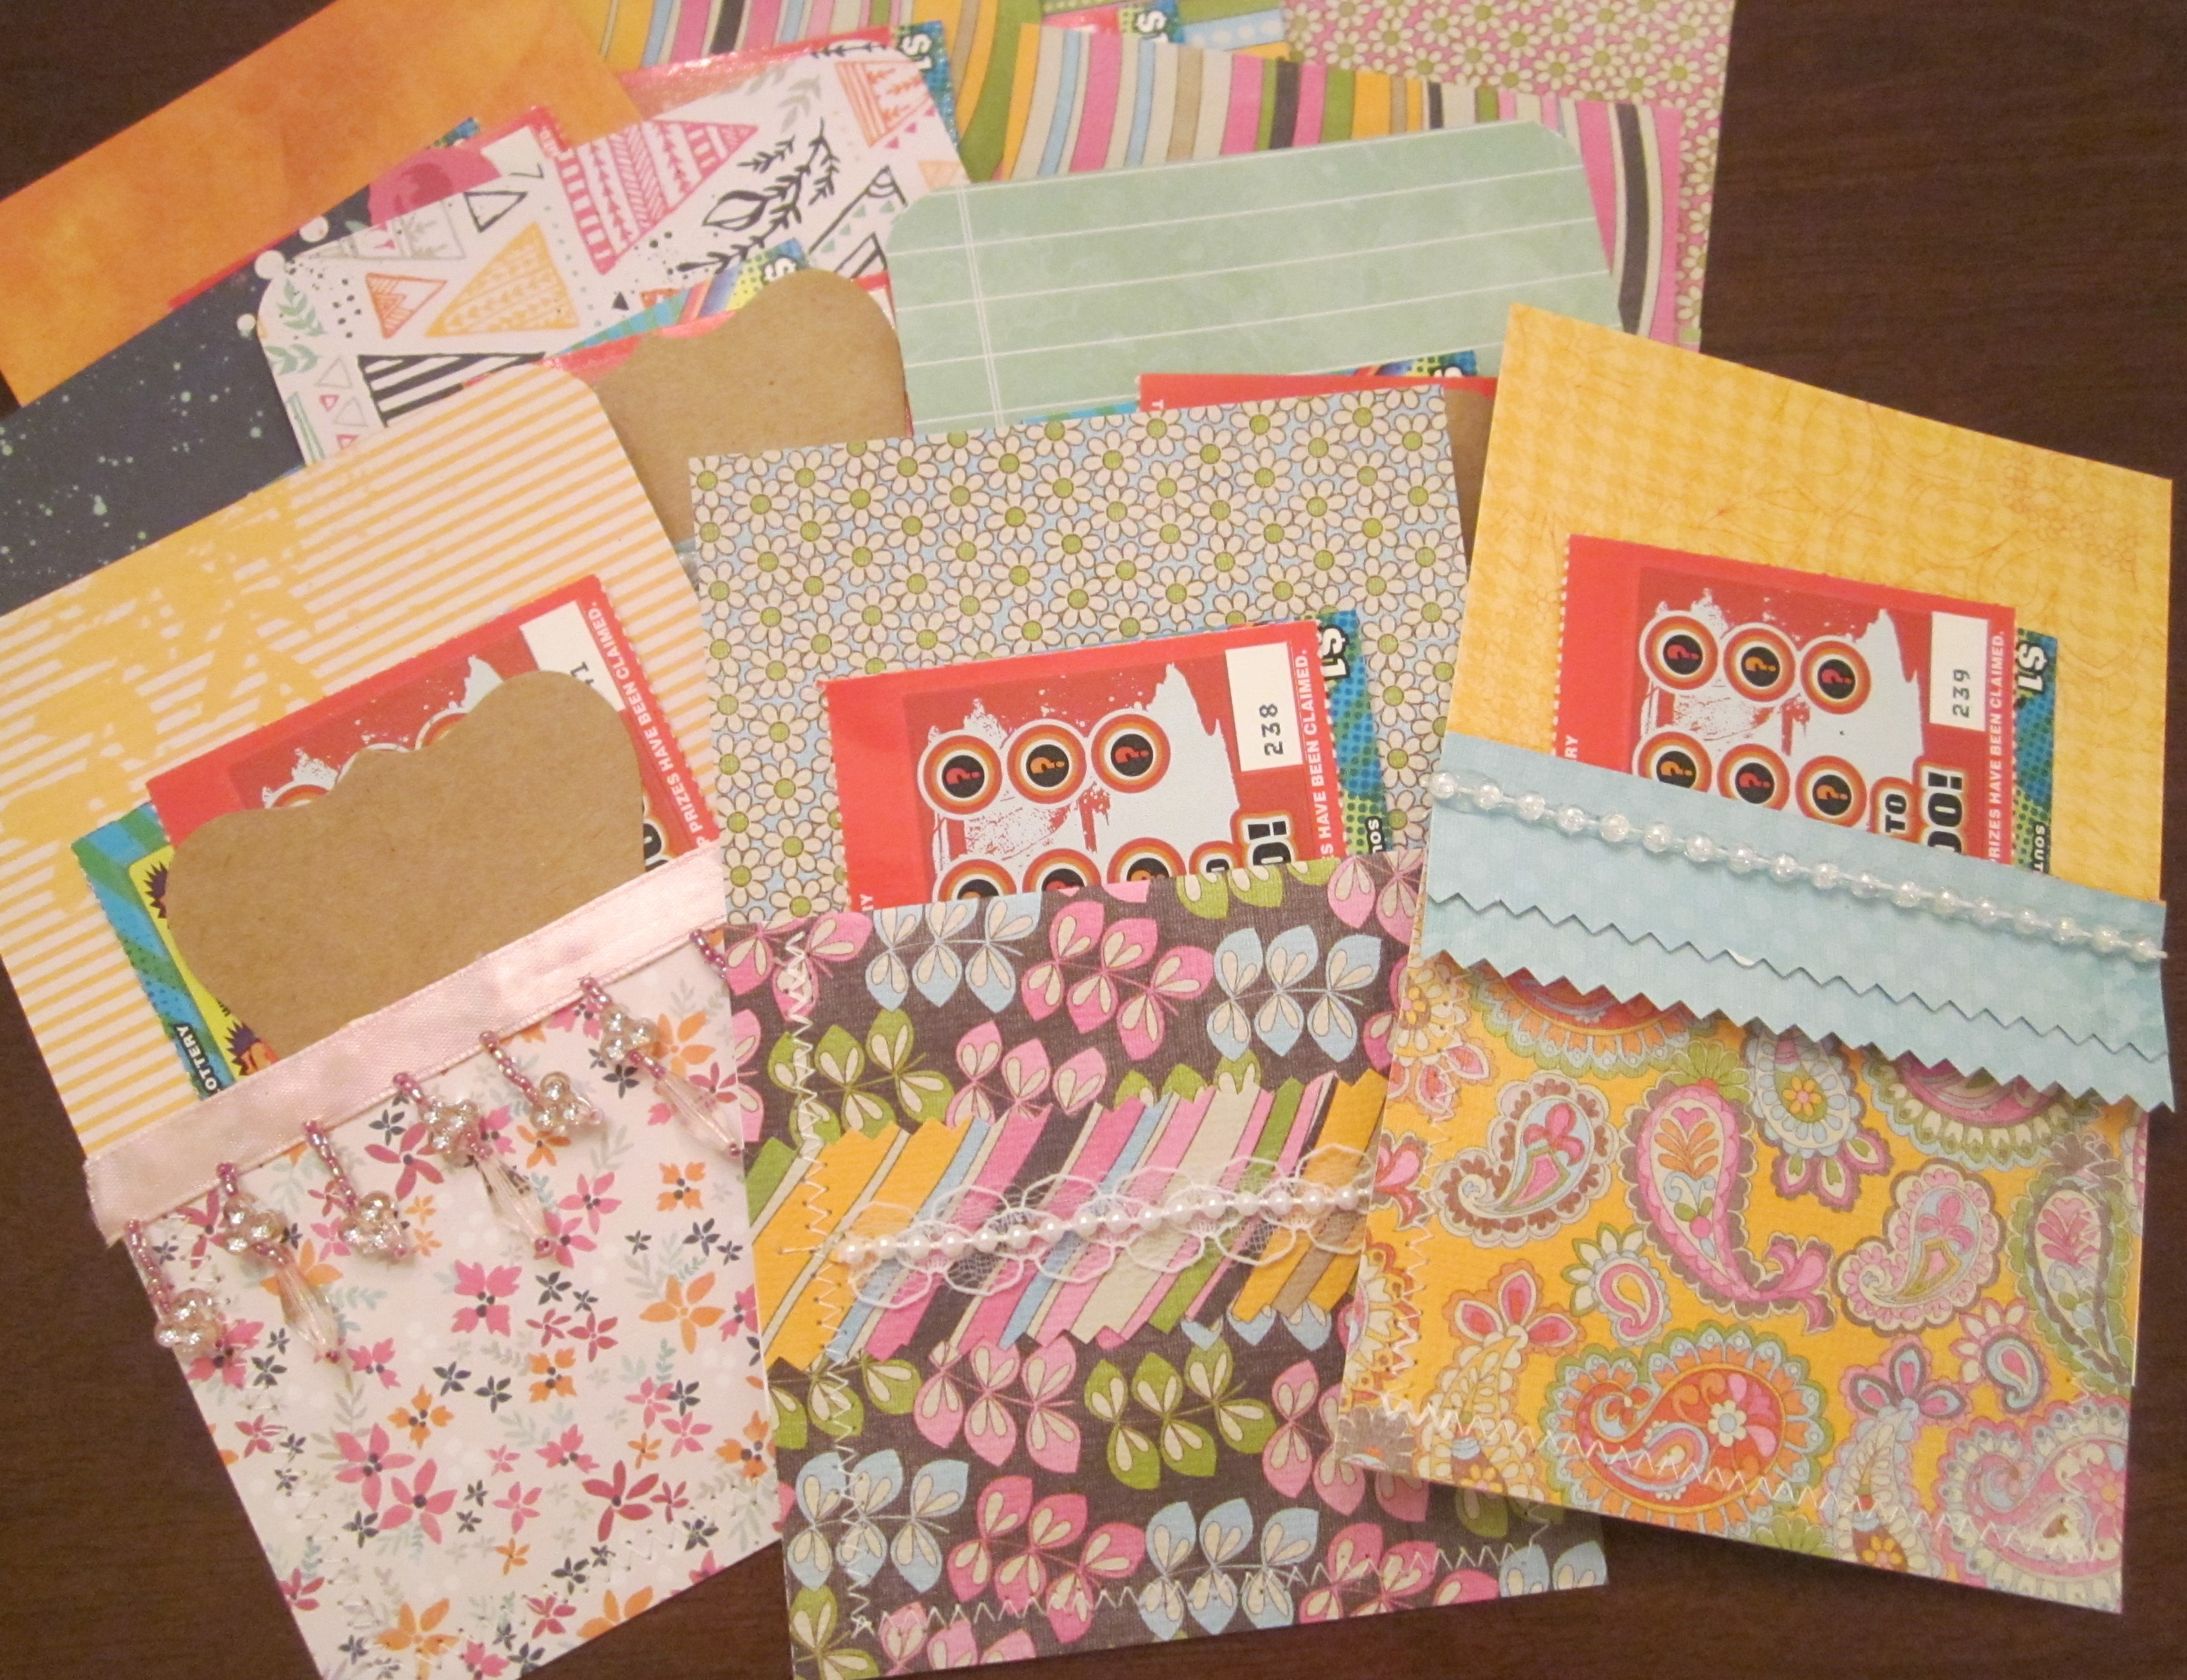 Scrapbook ideas for teachers - Paper Pockets Finished All